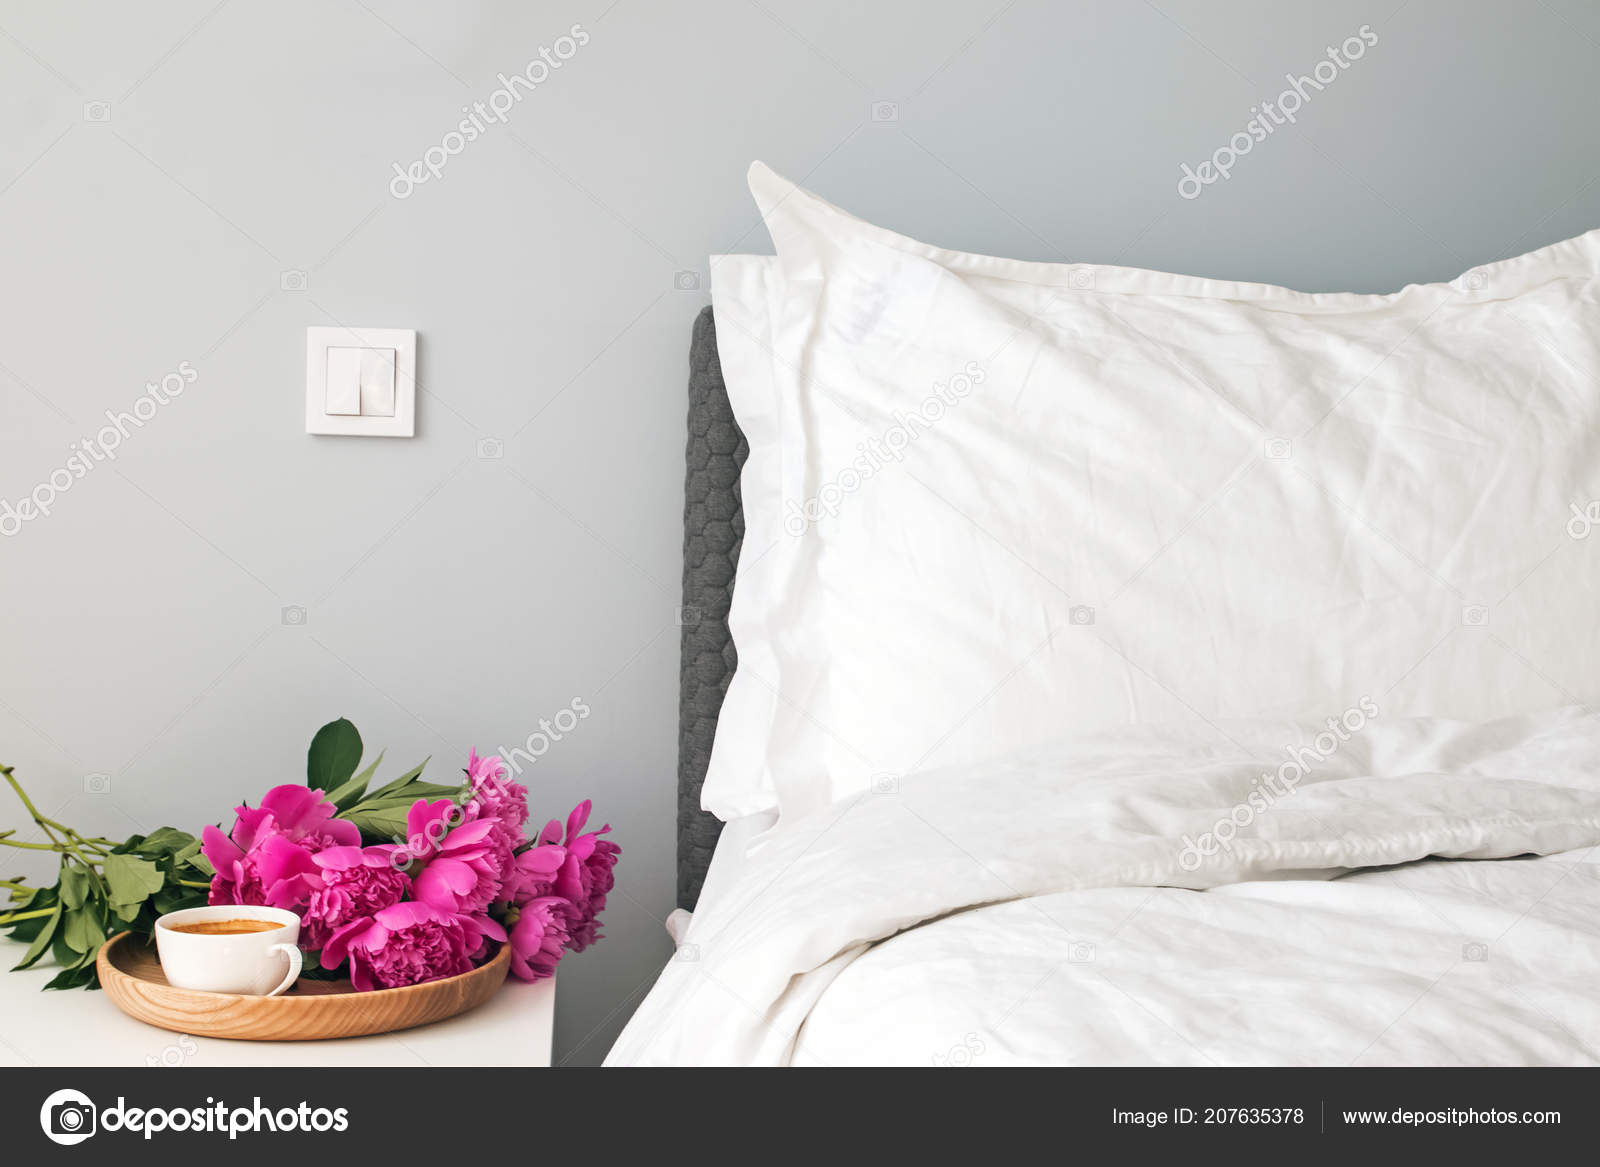 Morning Bedroom Detailts Bed White Bed Sheets Pink Peonies Coffee ...